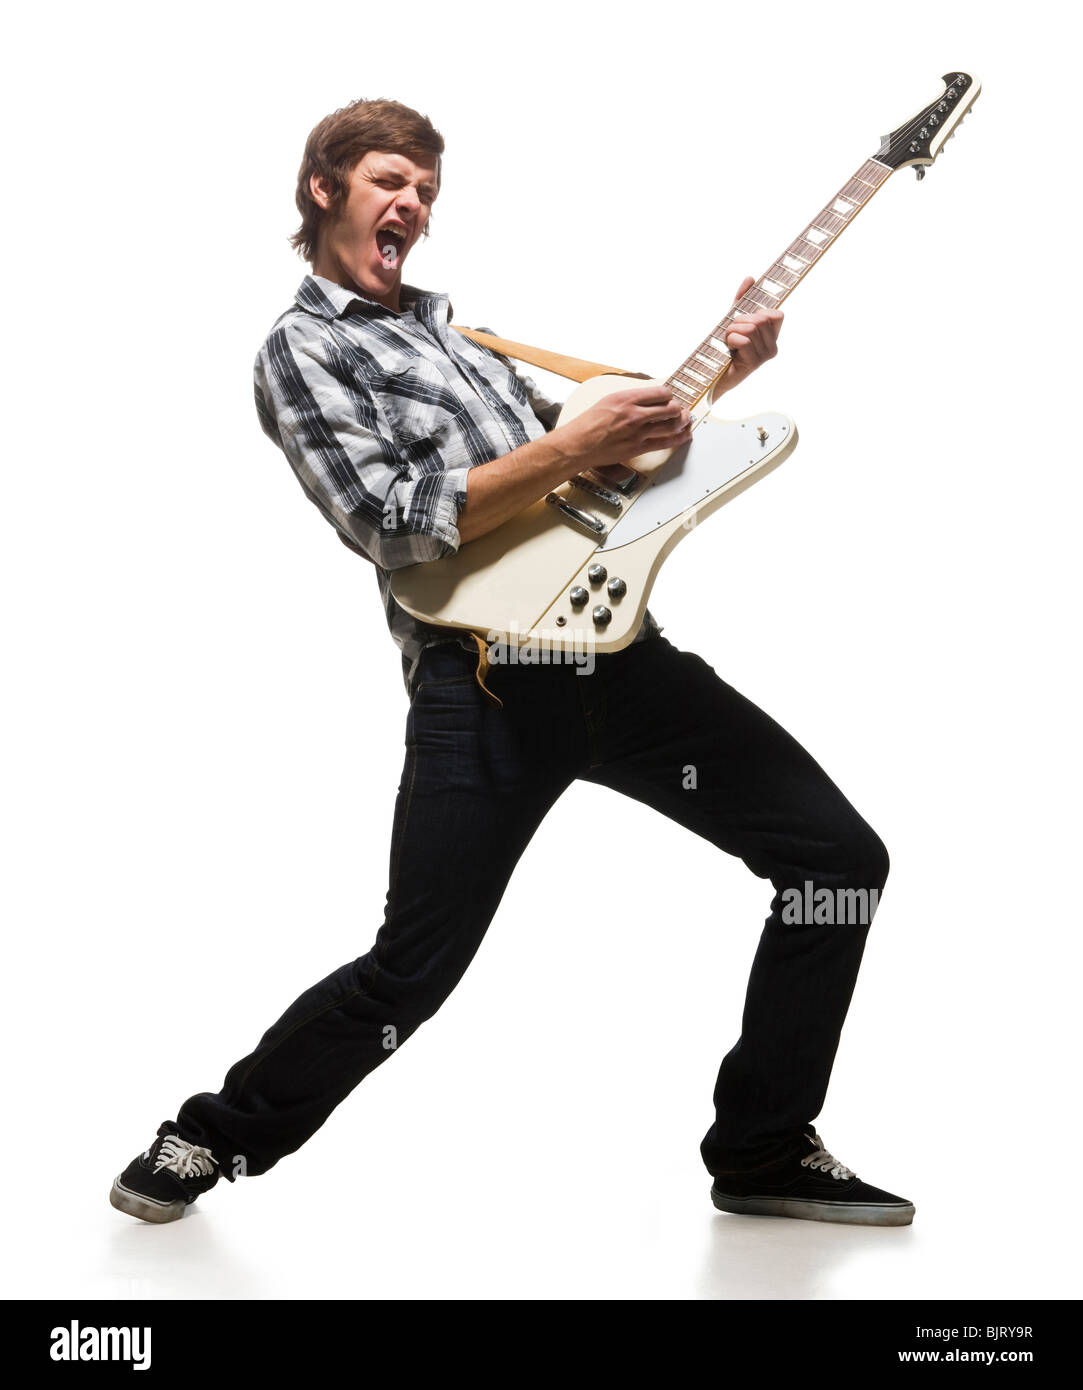 Young man playing electric guitar, shouting - Stock Image